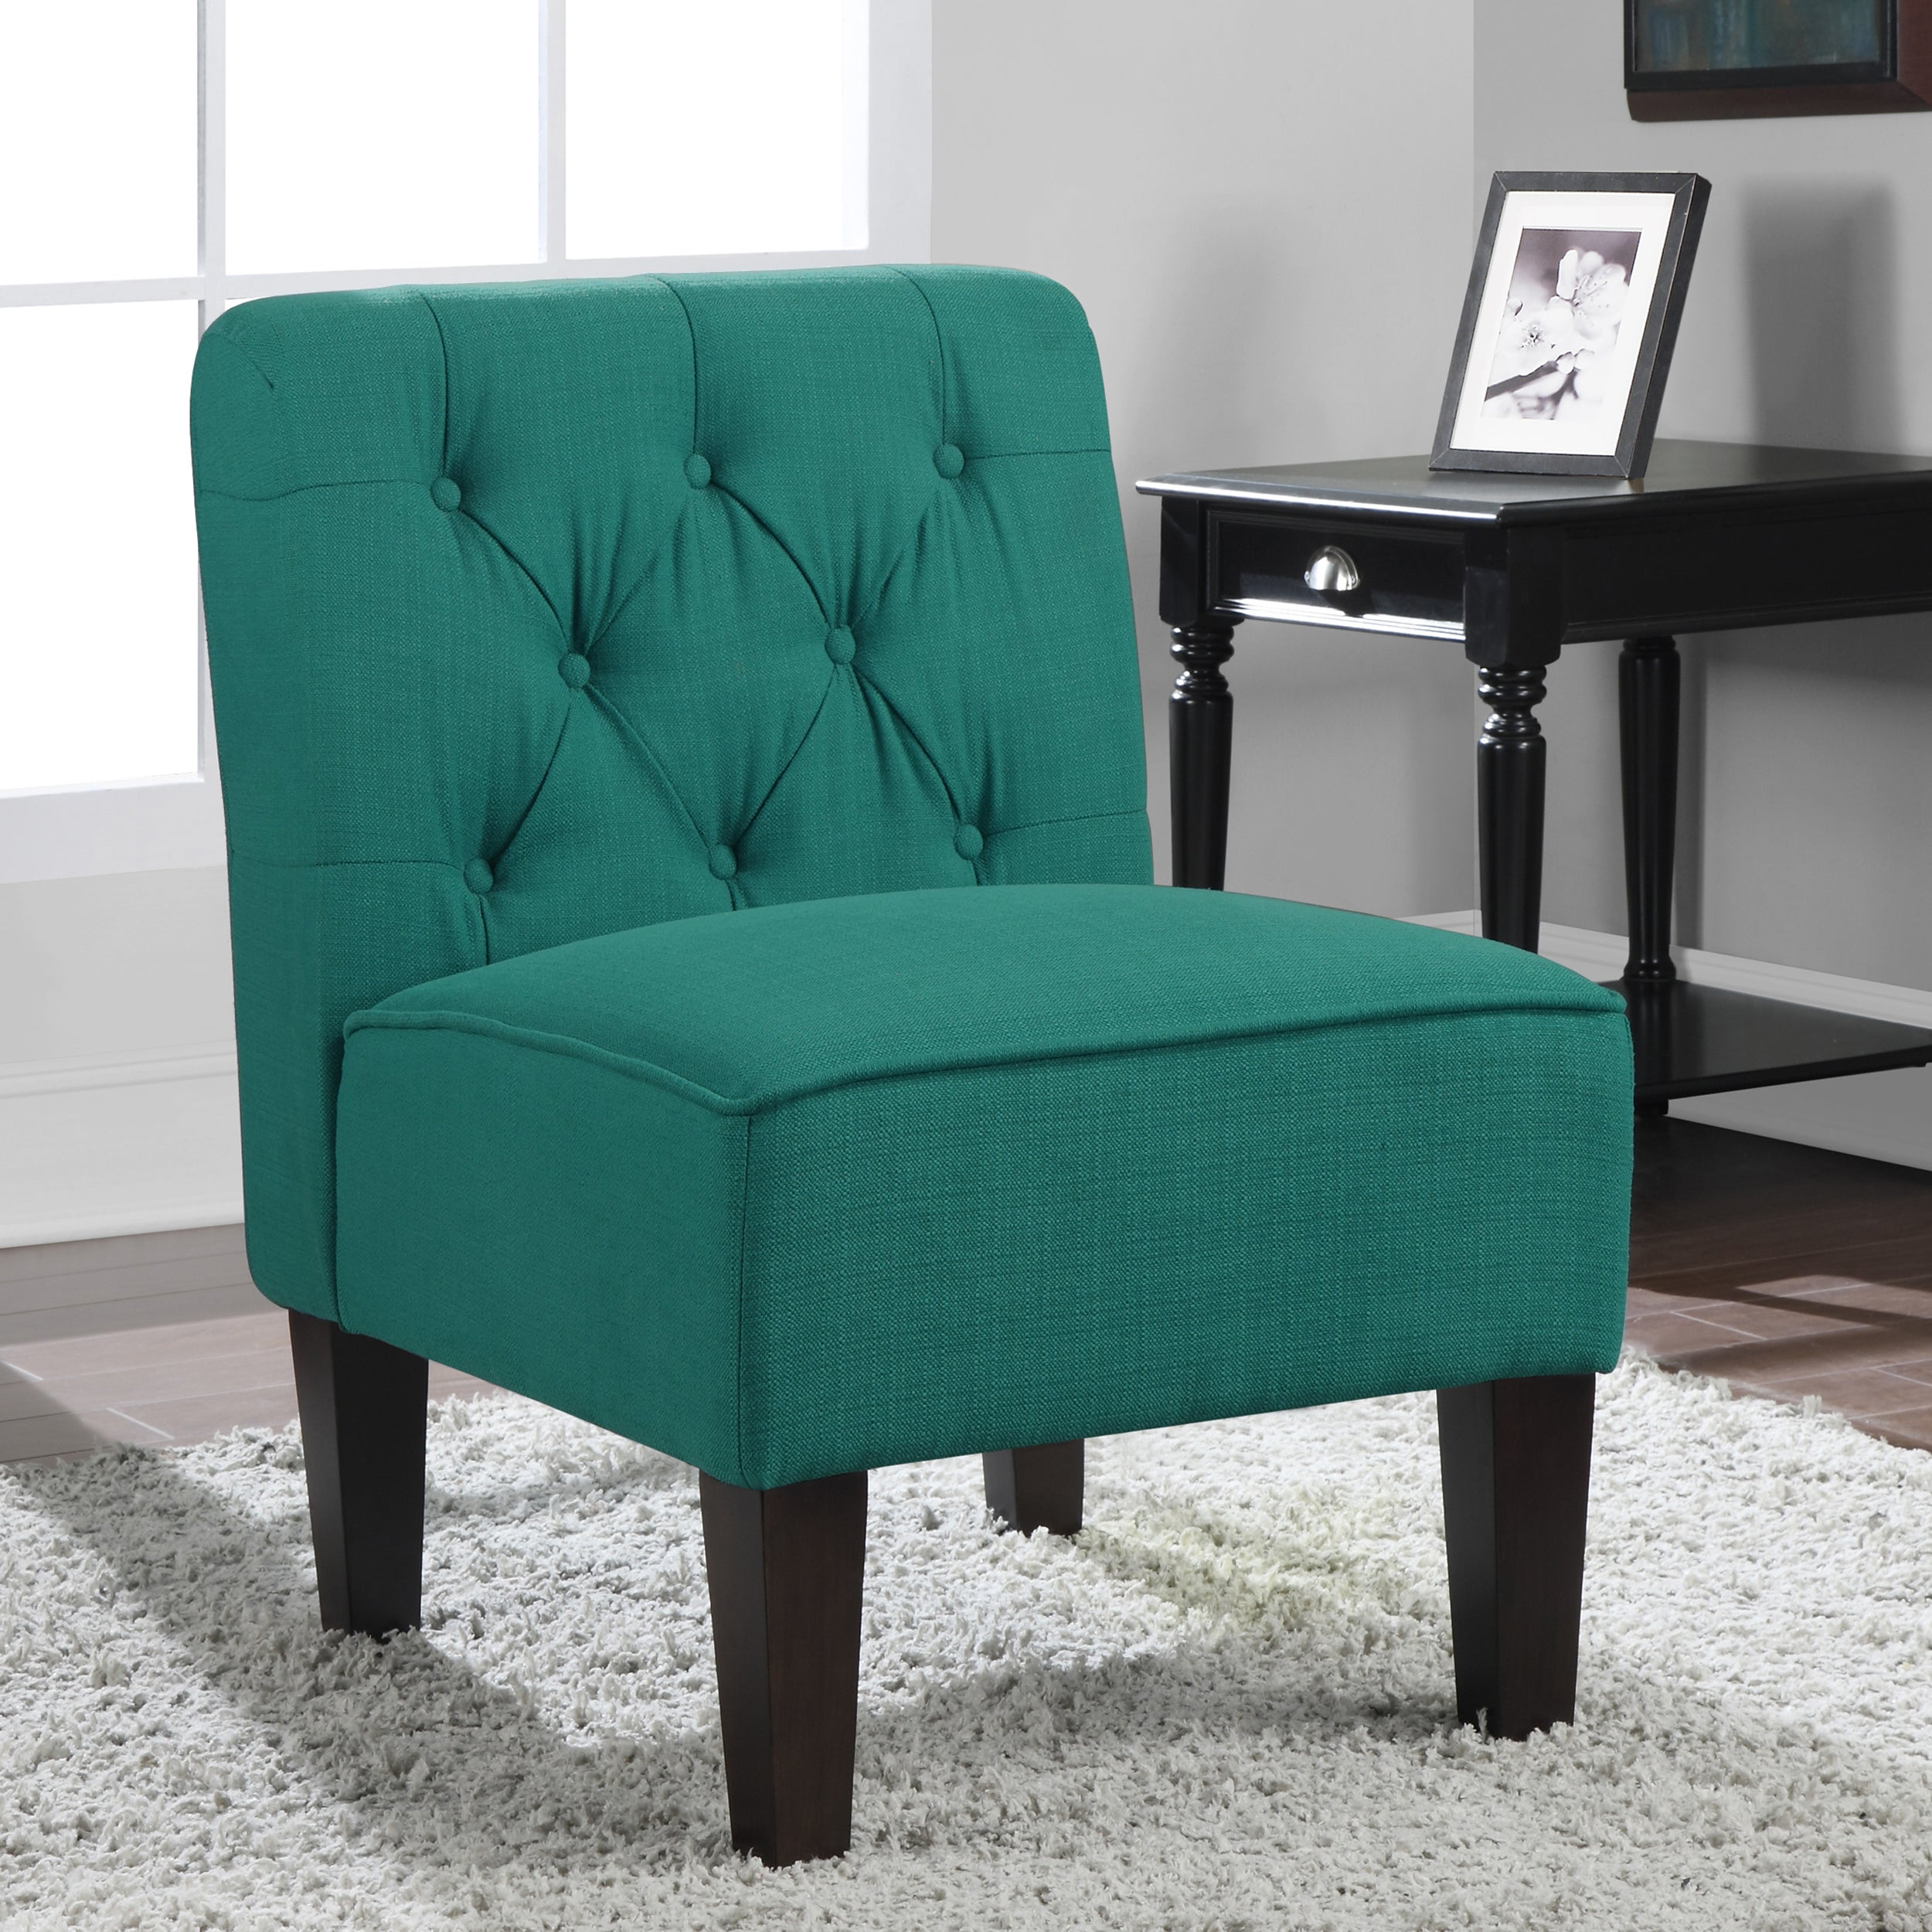 Peacock Blue Accent Chair Viewing Gallery